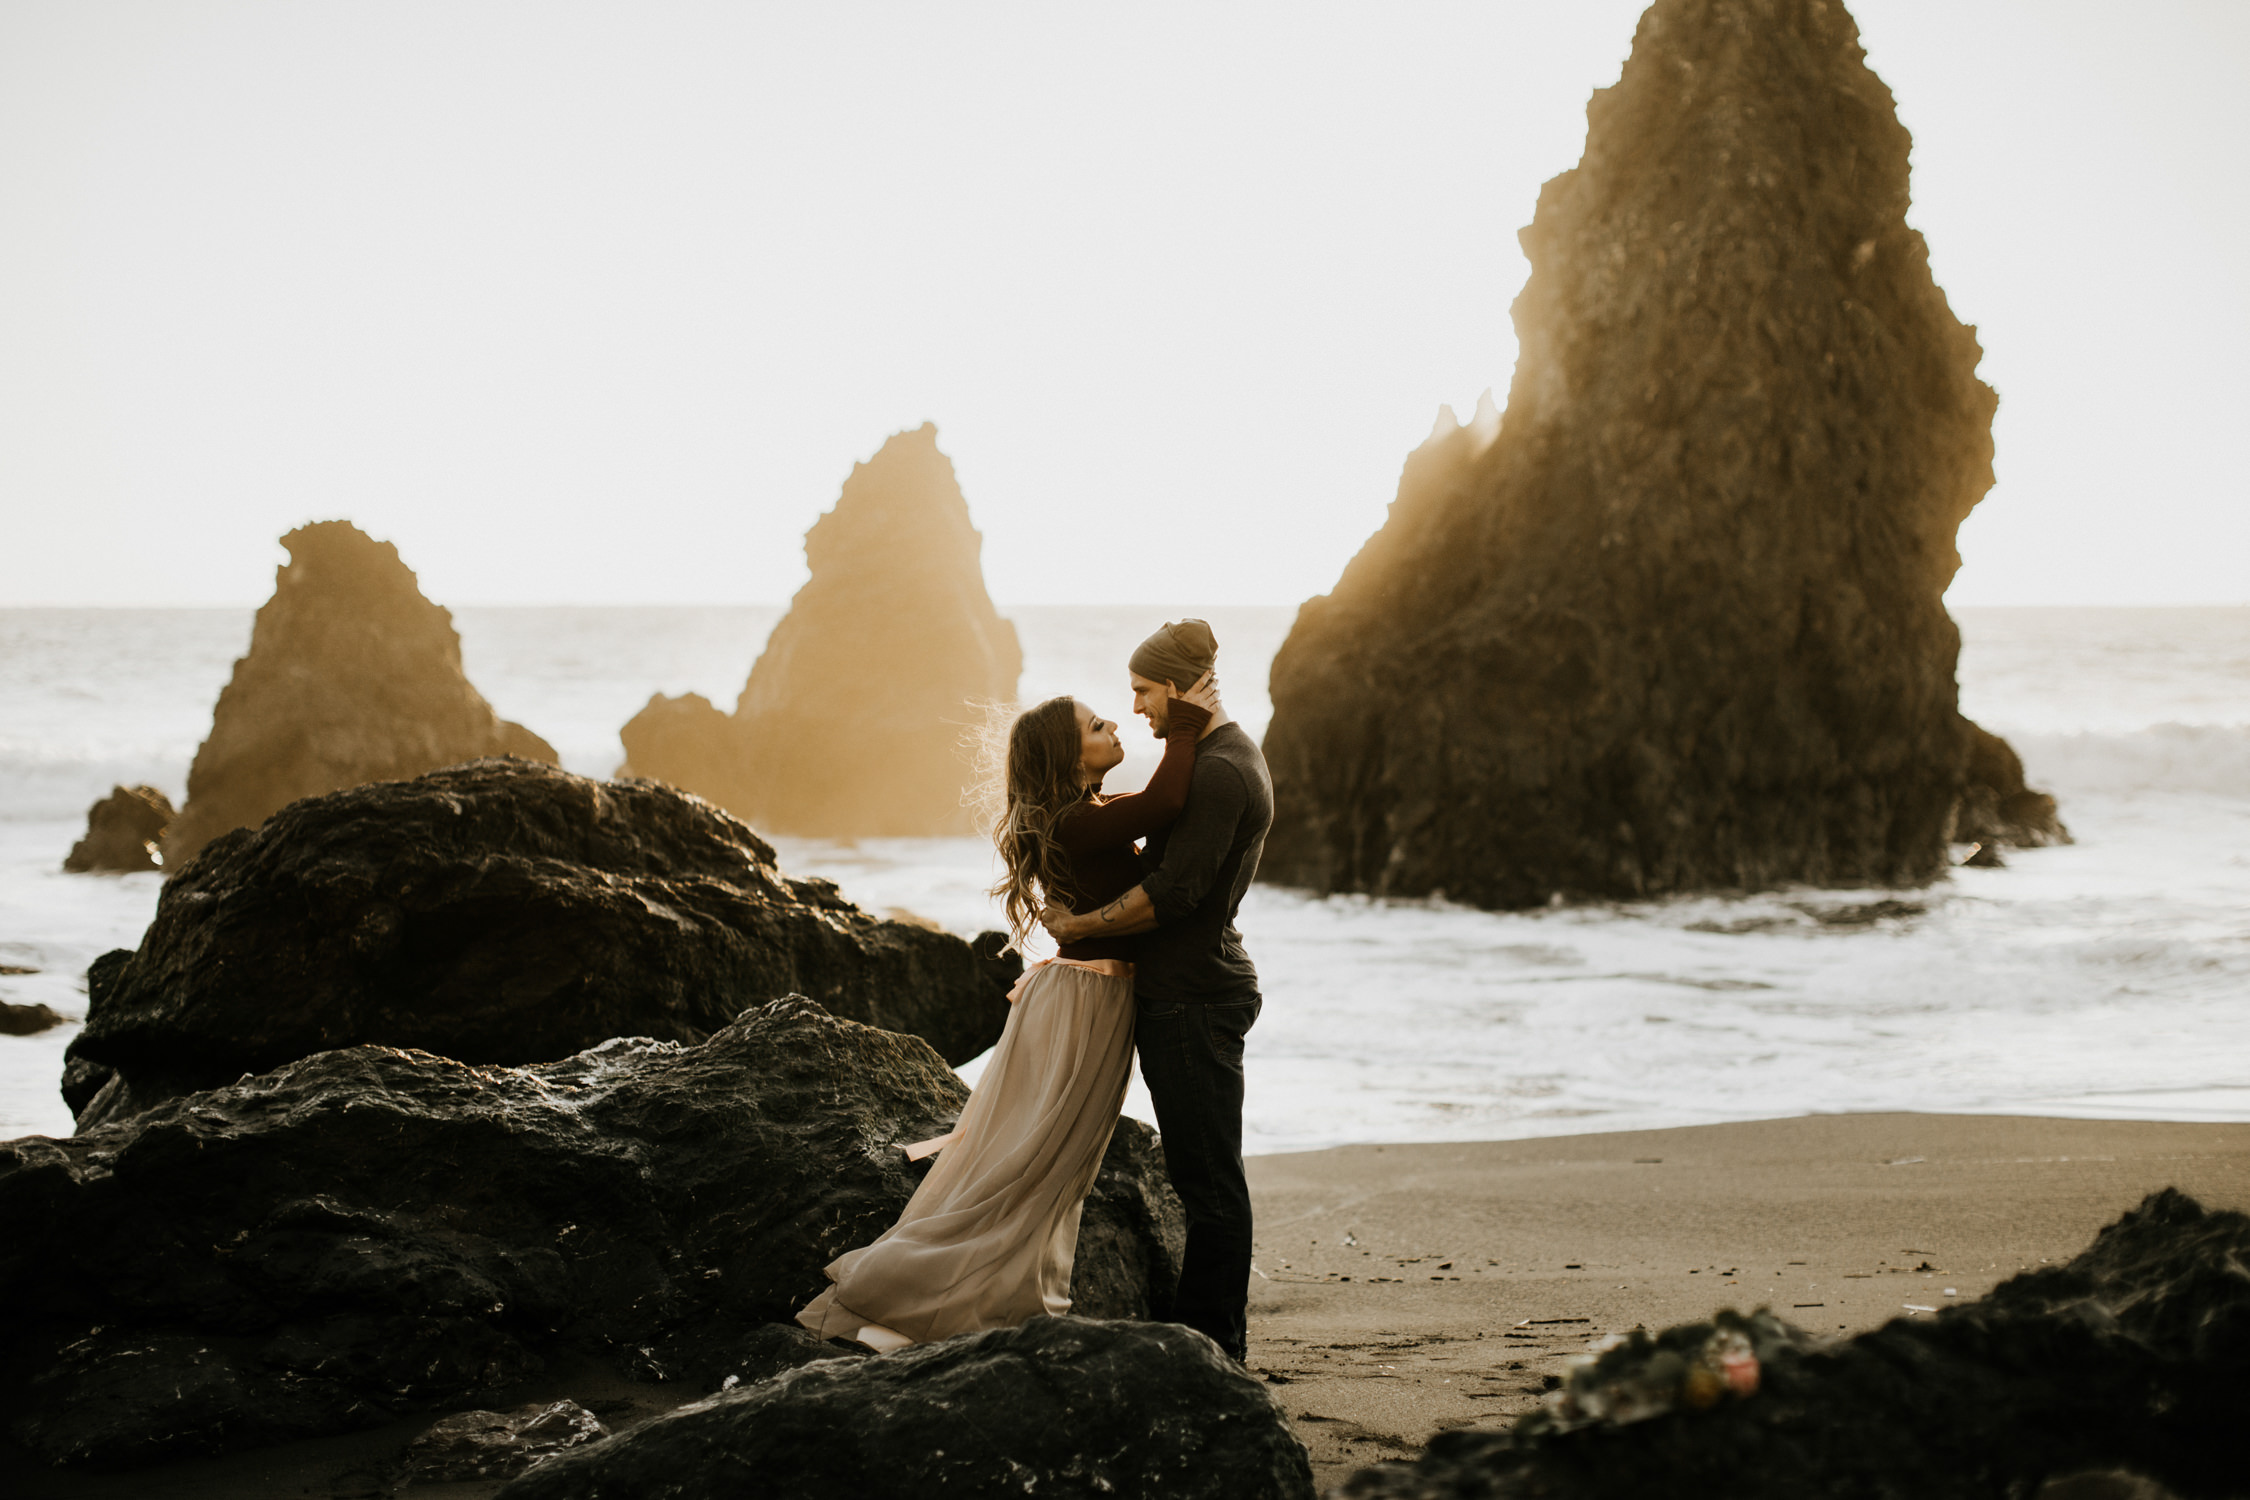 couple-intimate-engagement-session-sausalito-california-43.jpg